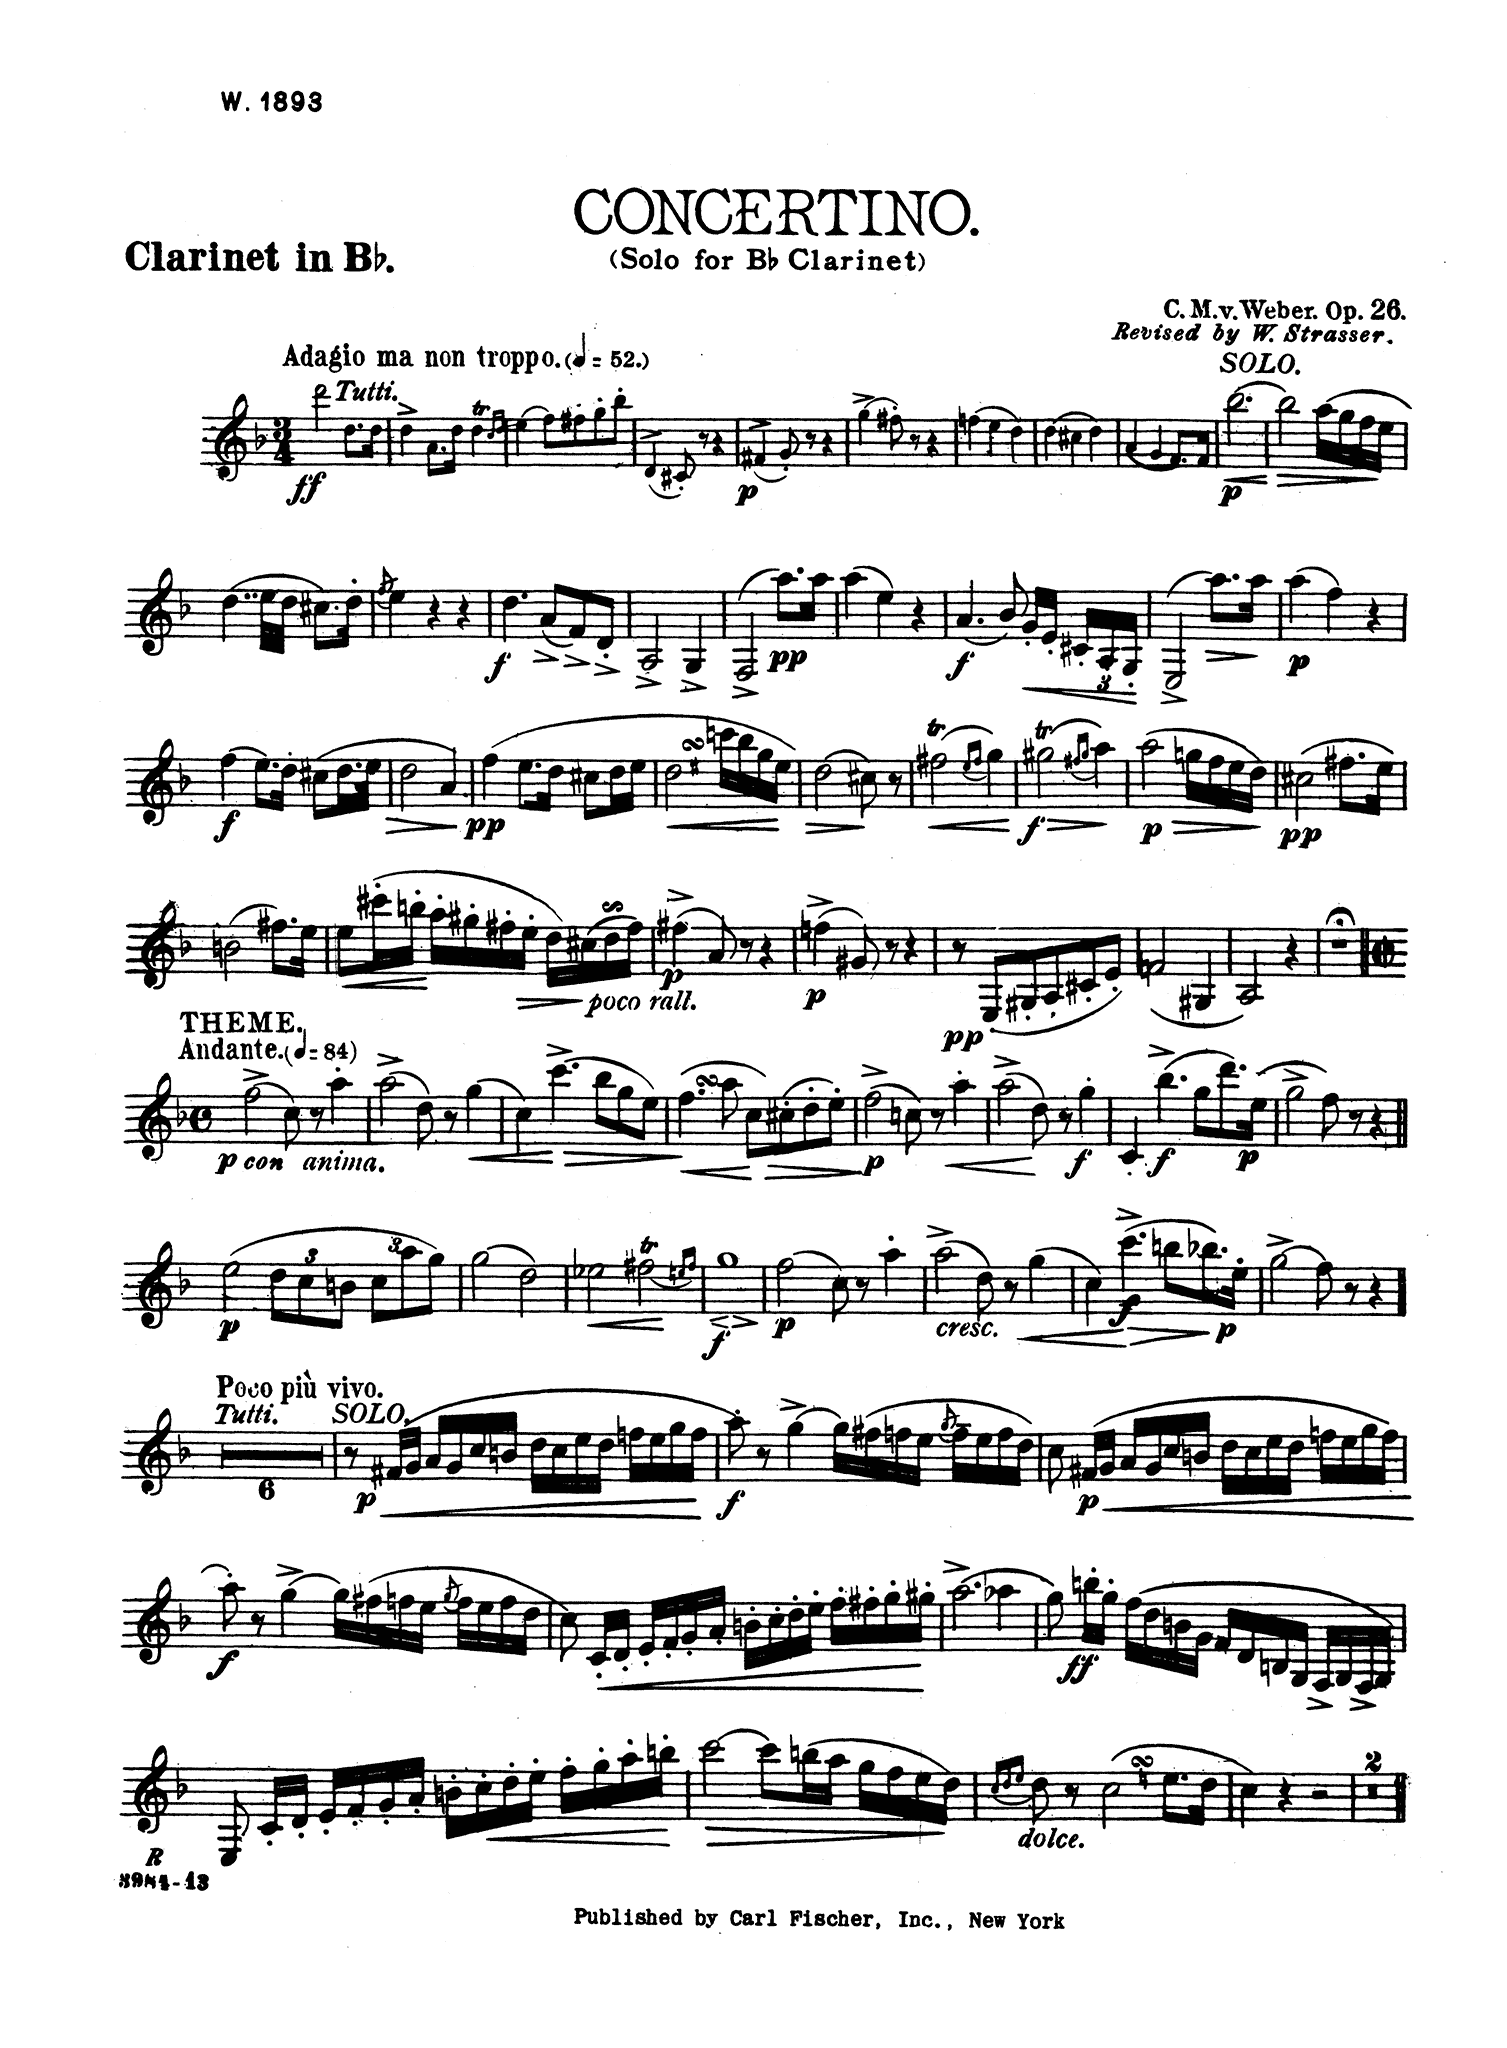 Concertino, Op. 26 Clarinet part